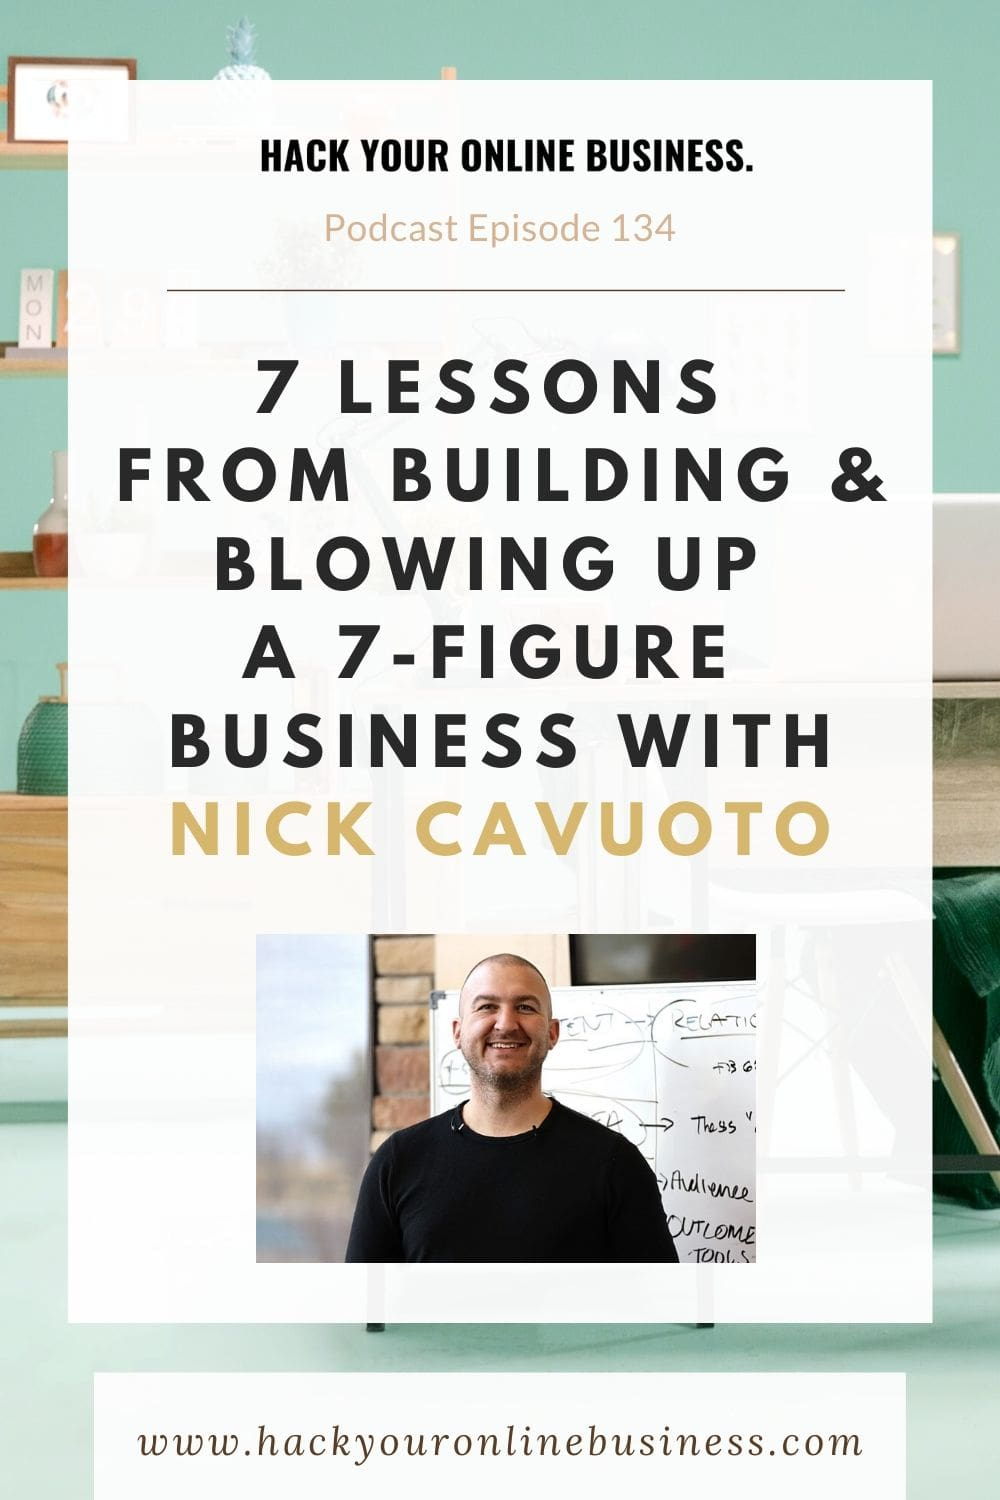 7 Lessons From Building & Blowing Up A 7-Figure Business With Nick Cavuoto